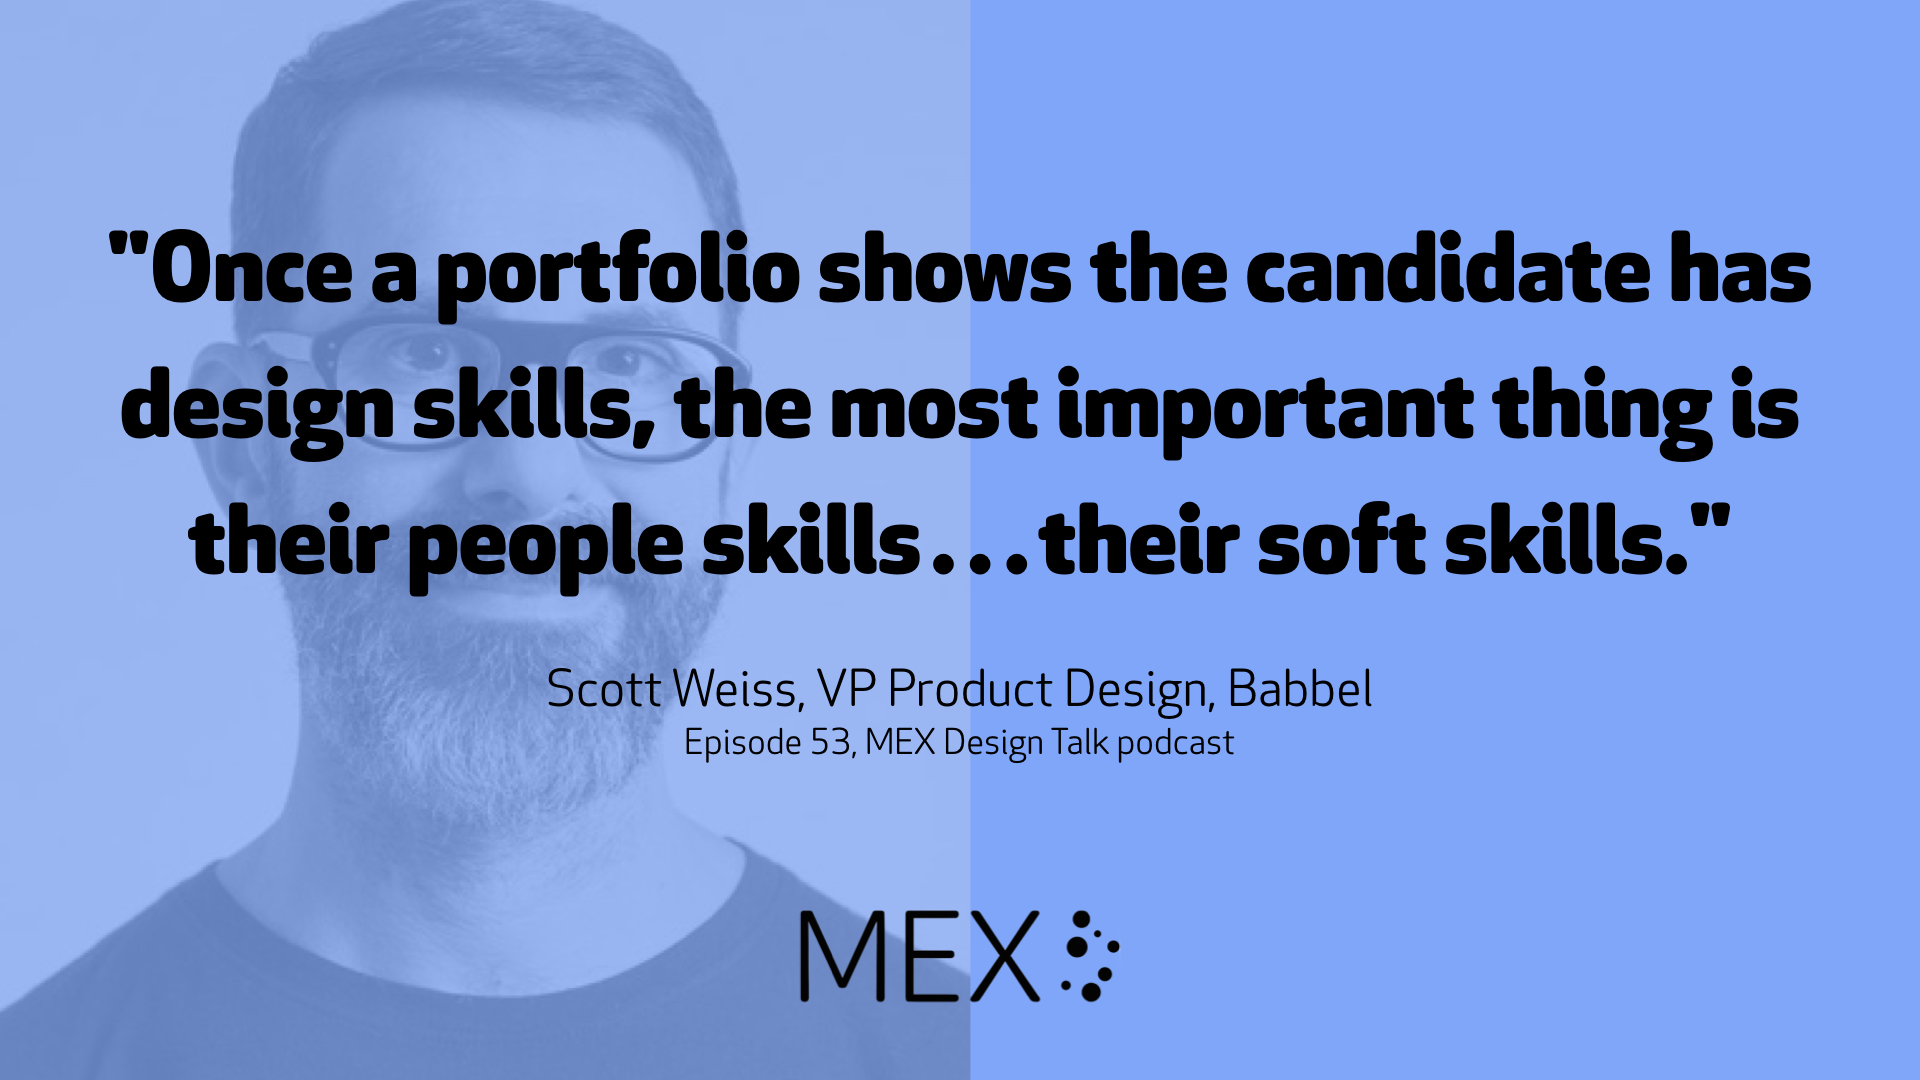 """""""Once a portfolio shows the candidate has design skills, the most important thing is their people skills…their soft skills."""" Scott Weiss, VP Product Design, Babbel Episode 53, MEX Design Talk podcast"""